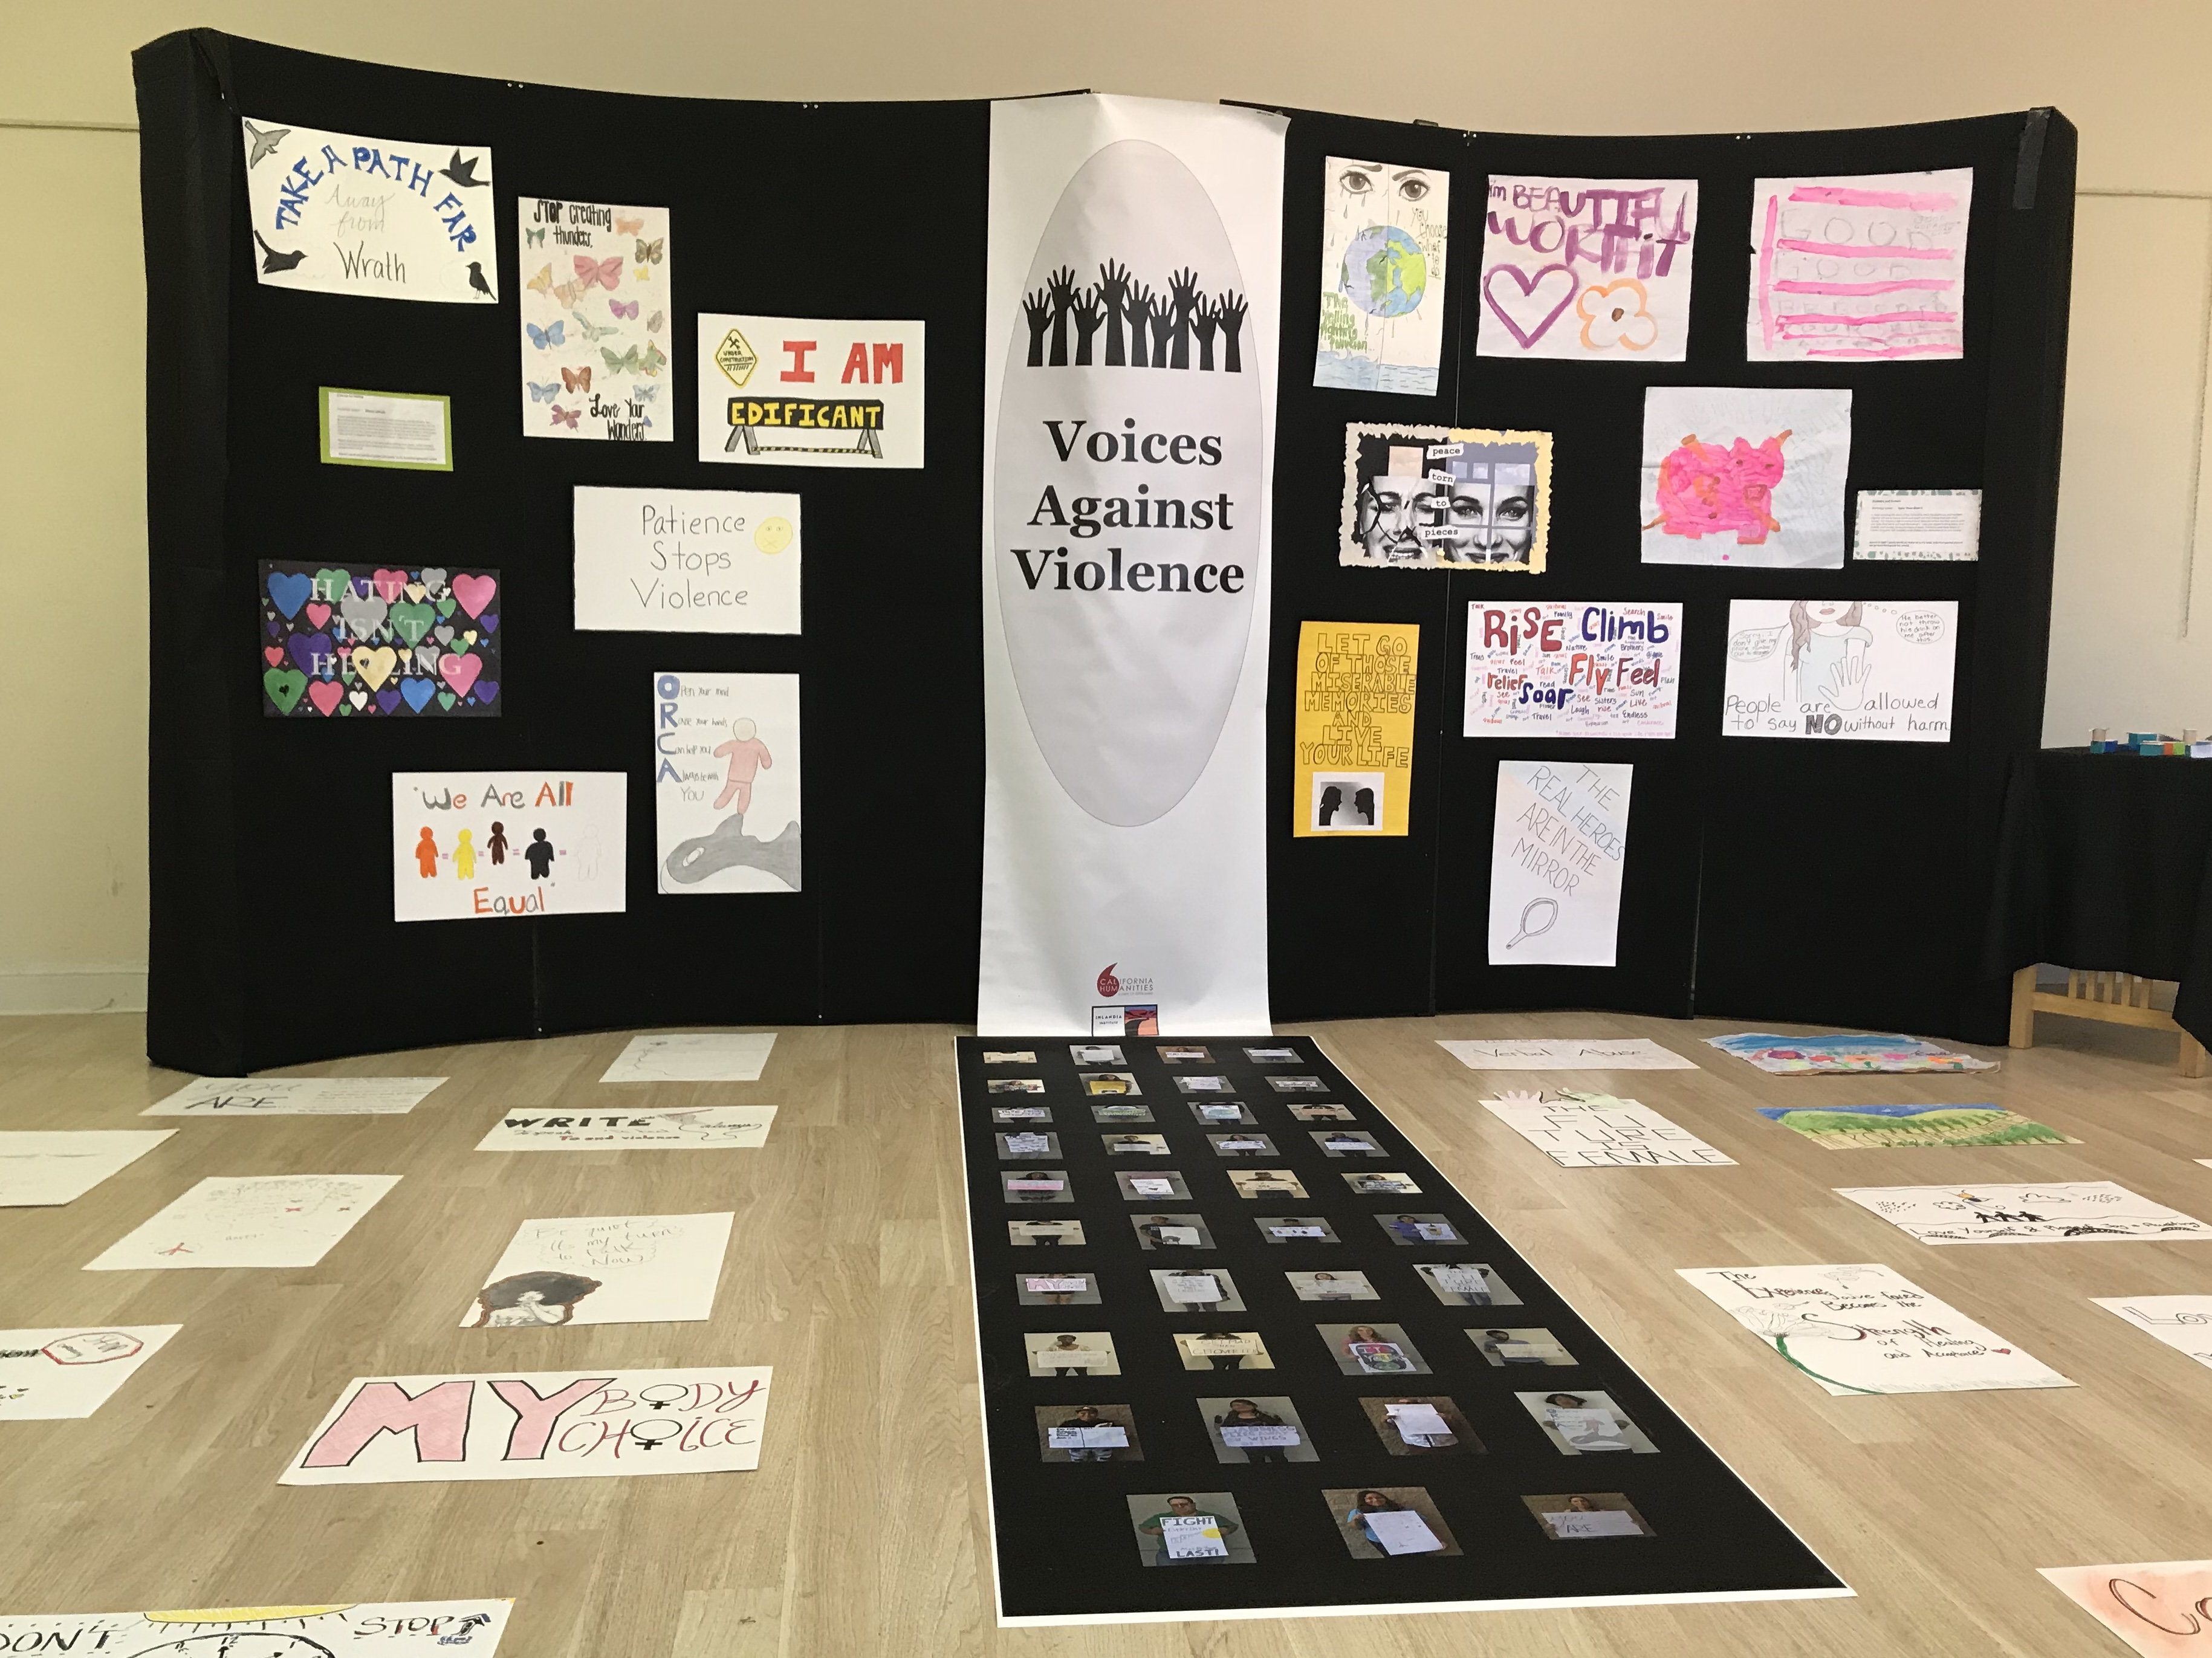 Image of the Voices Against Violence project display.